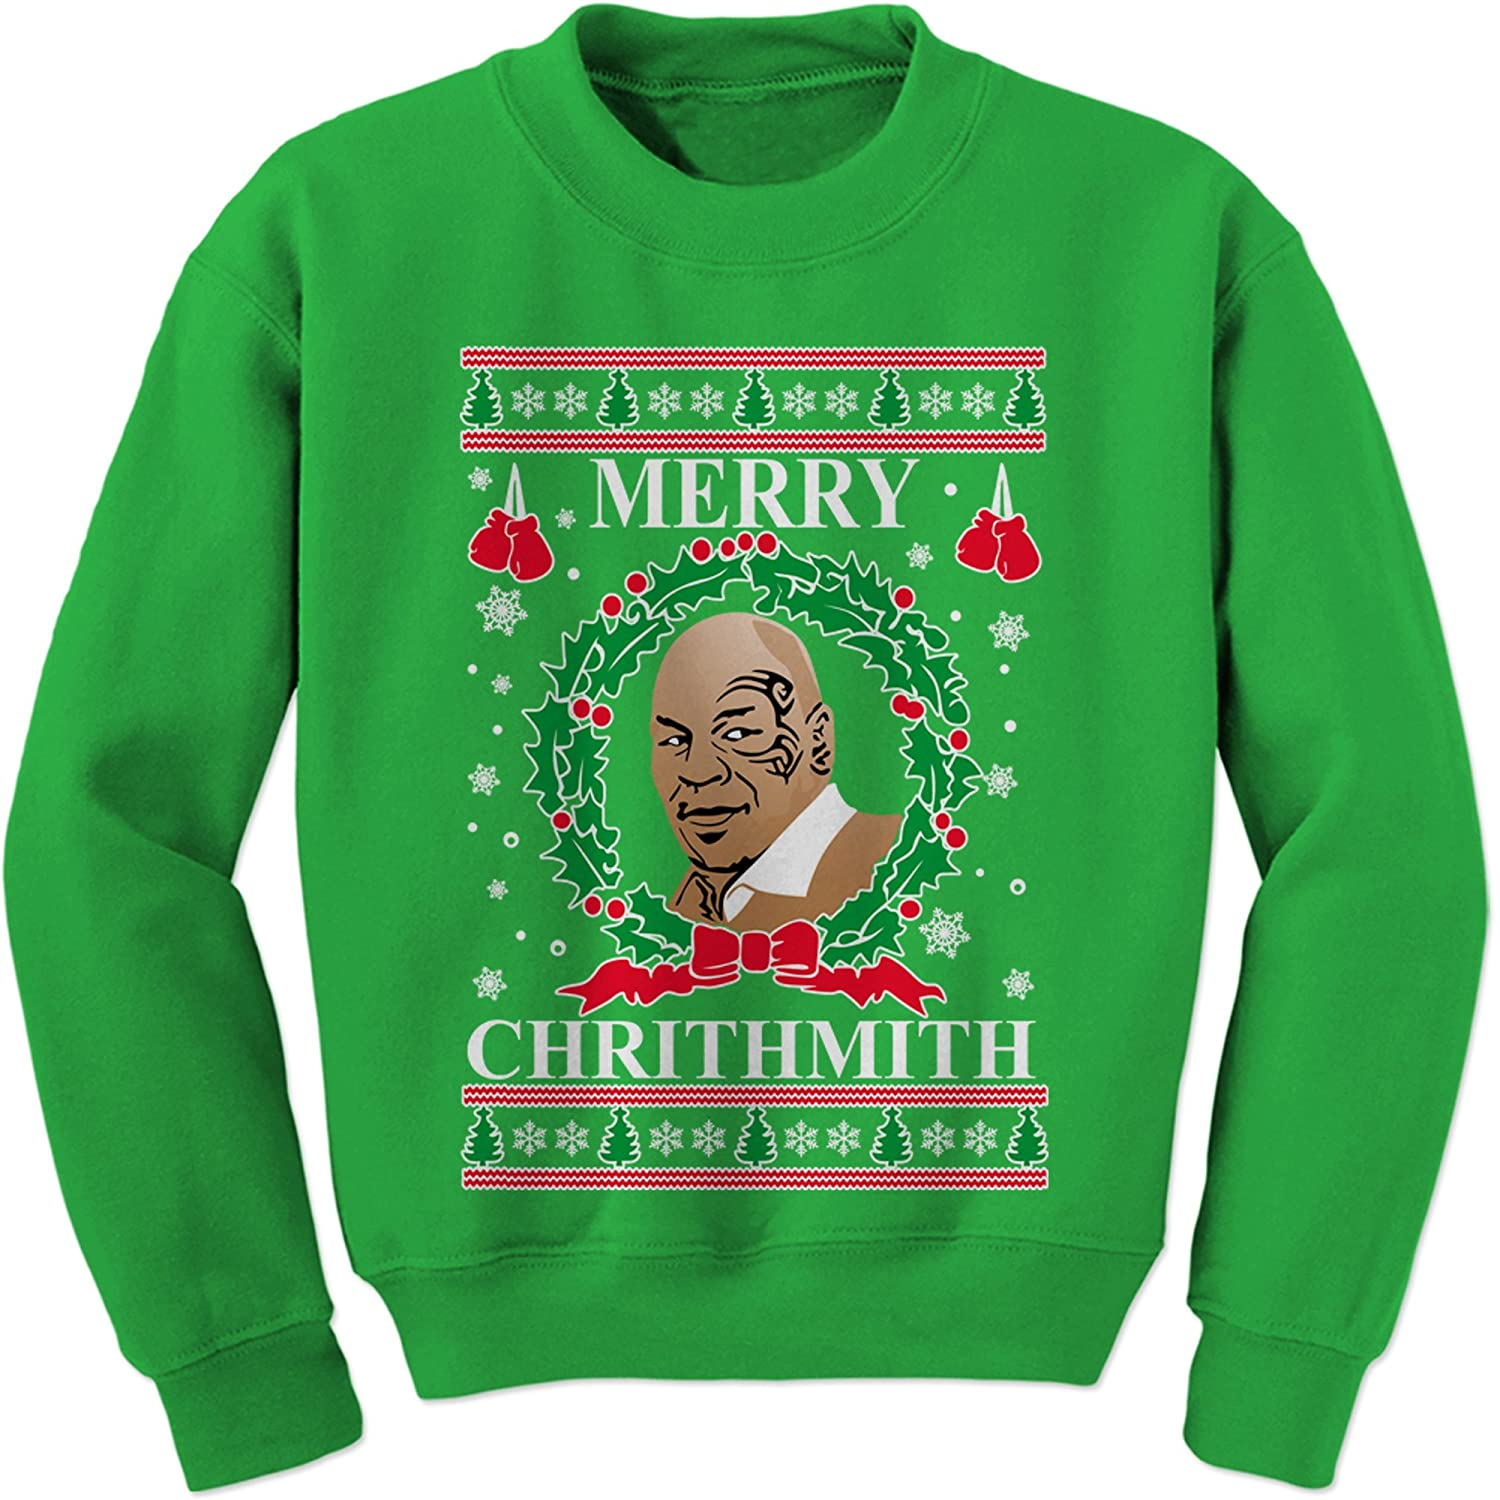 Expression Tees Merry Chrithmith Ugly Christmas Crewneck Sweatshirt 8089-C